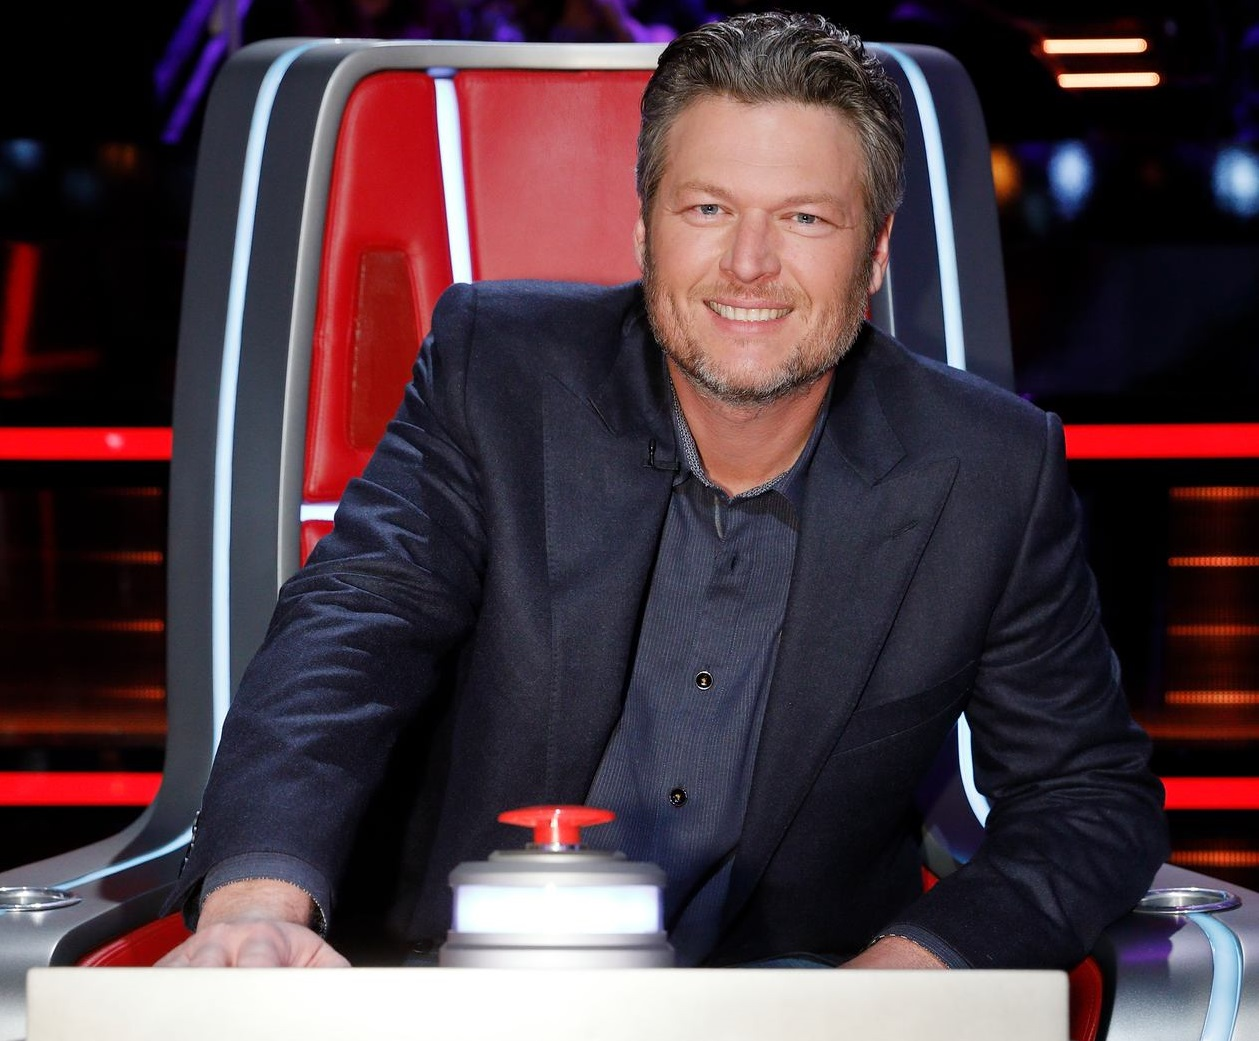 Blake Shelton Hints at When He Will Leave 'The Voice'